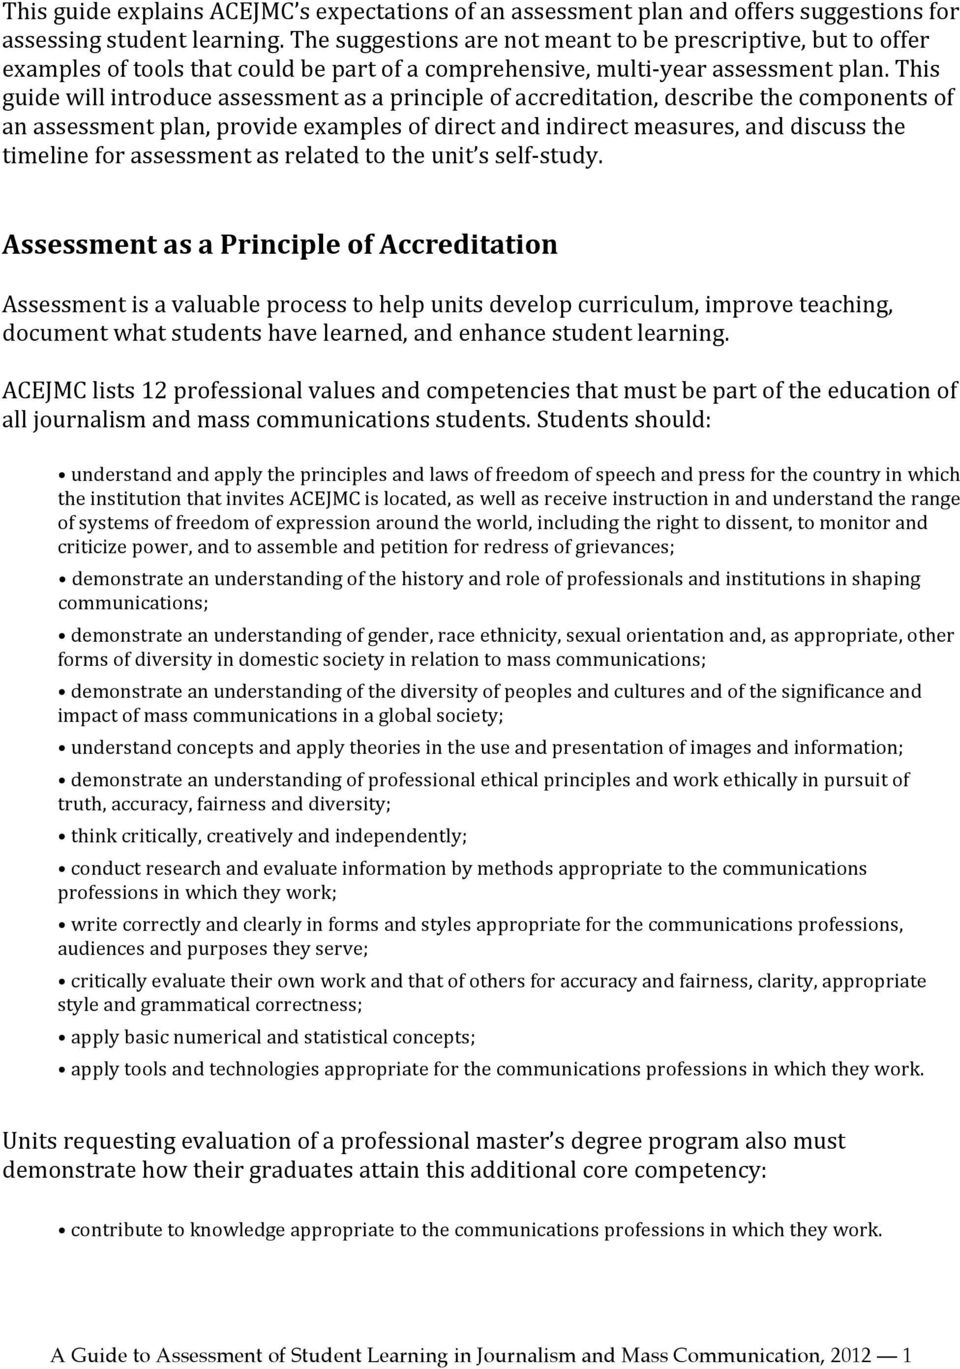 This guide will introduce assessment as a principle of accreditation, describe the components of an assessment plan, provide examples of direct and indirect measures, and discuss the timeline for